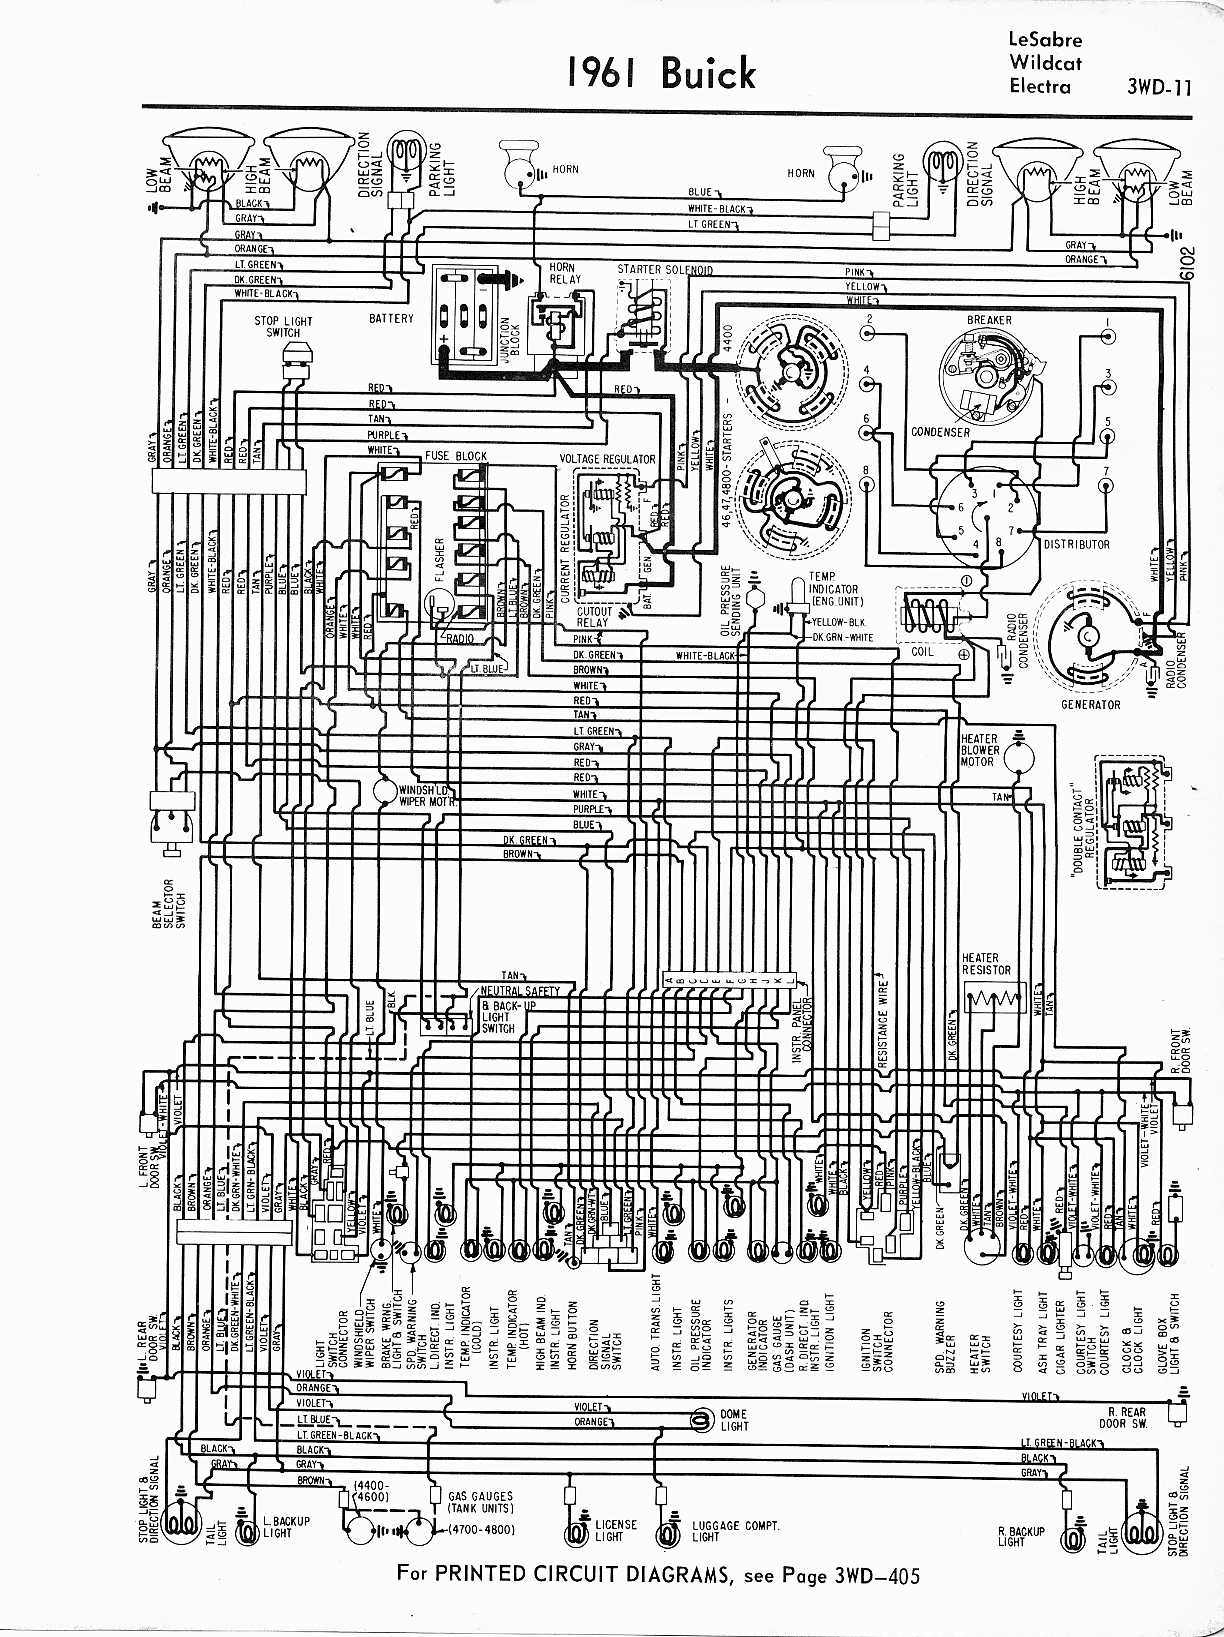 hight resolution of 1967 buick lesabre wiring diagrams wiring diagram third level 2003 buick lesabre wiring diagram 1967 buick lesabre wiring diagrams